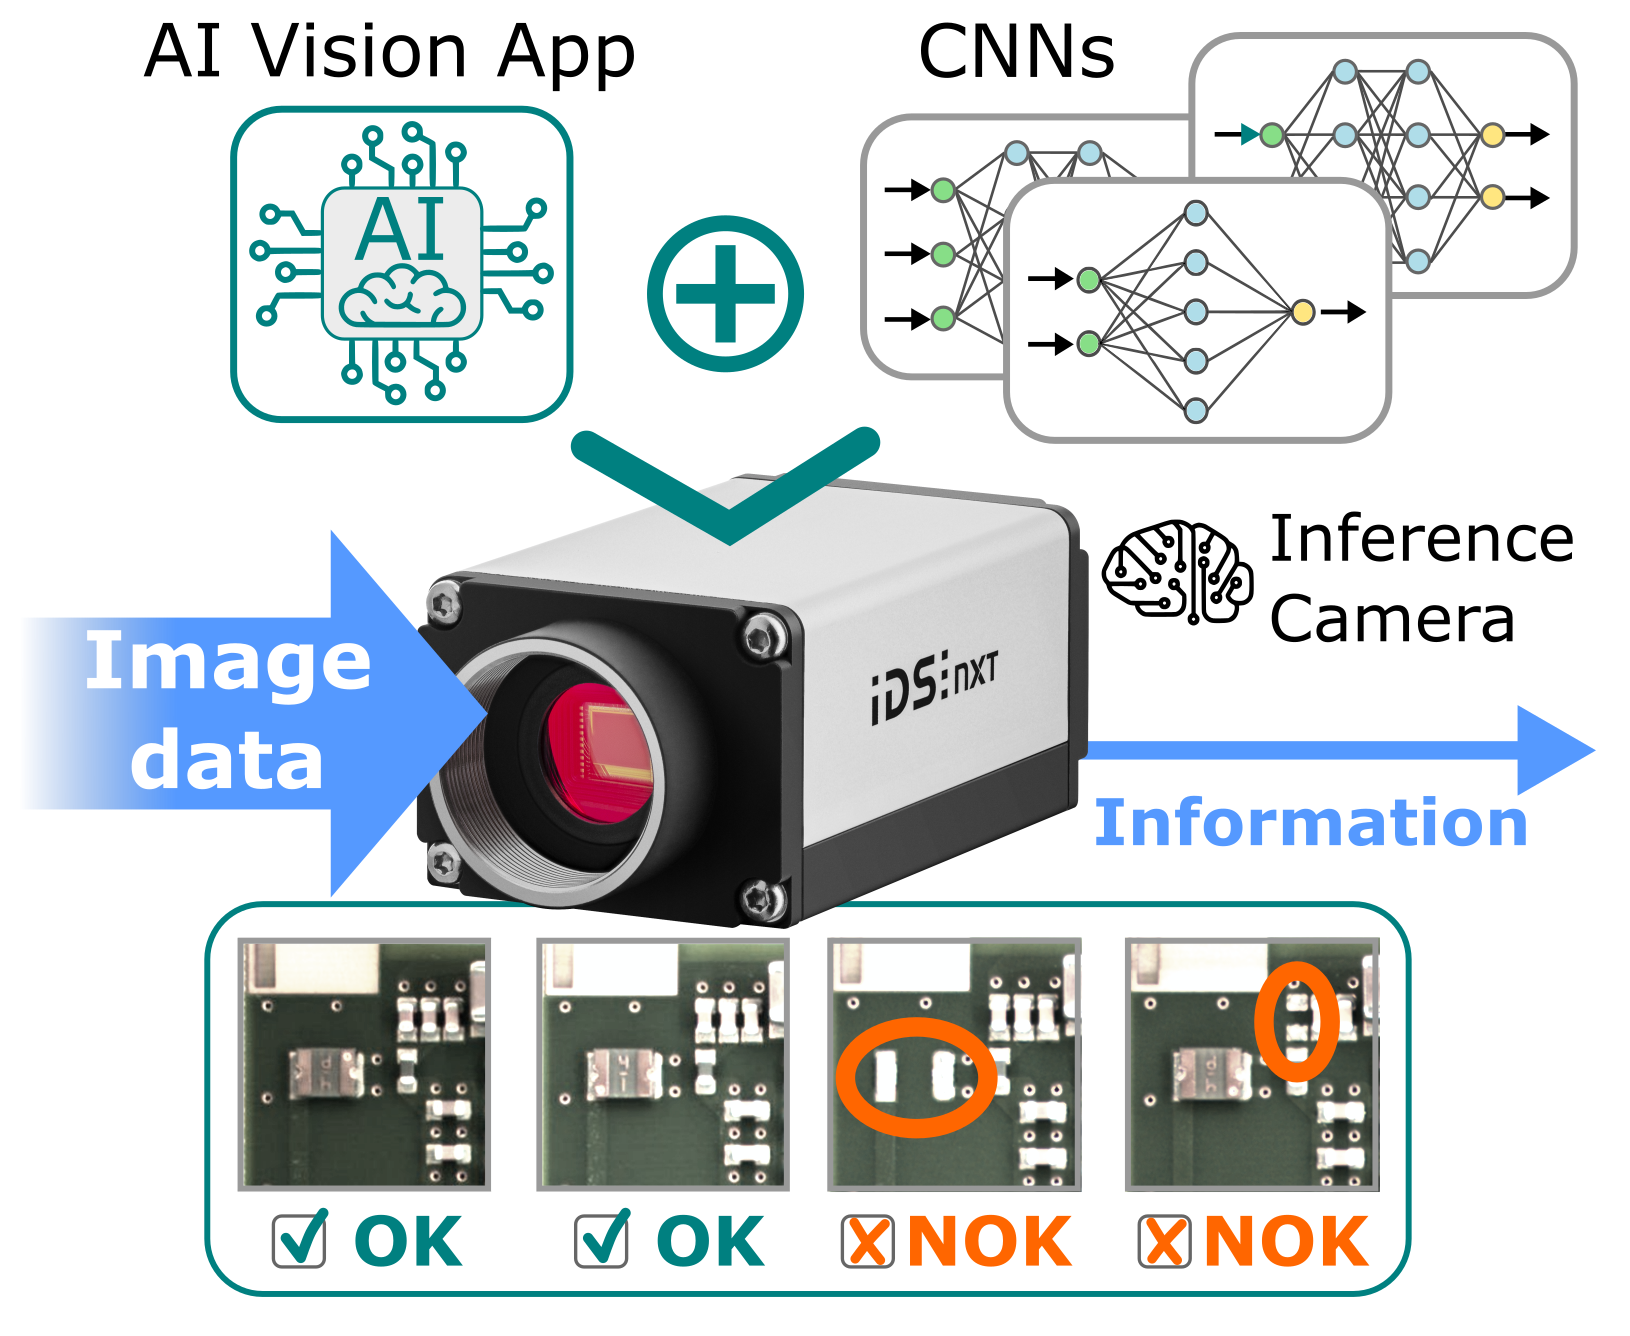 Intelligent edge devices reduce large amounts of sensor and image data. They generate directly usable information on the edge and communicate only this to the control unit.